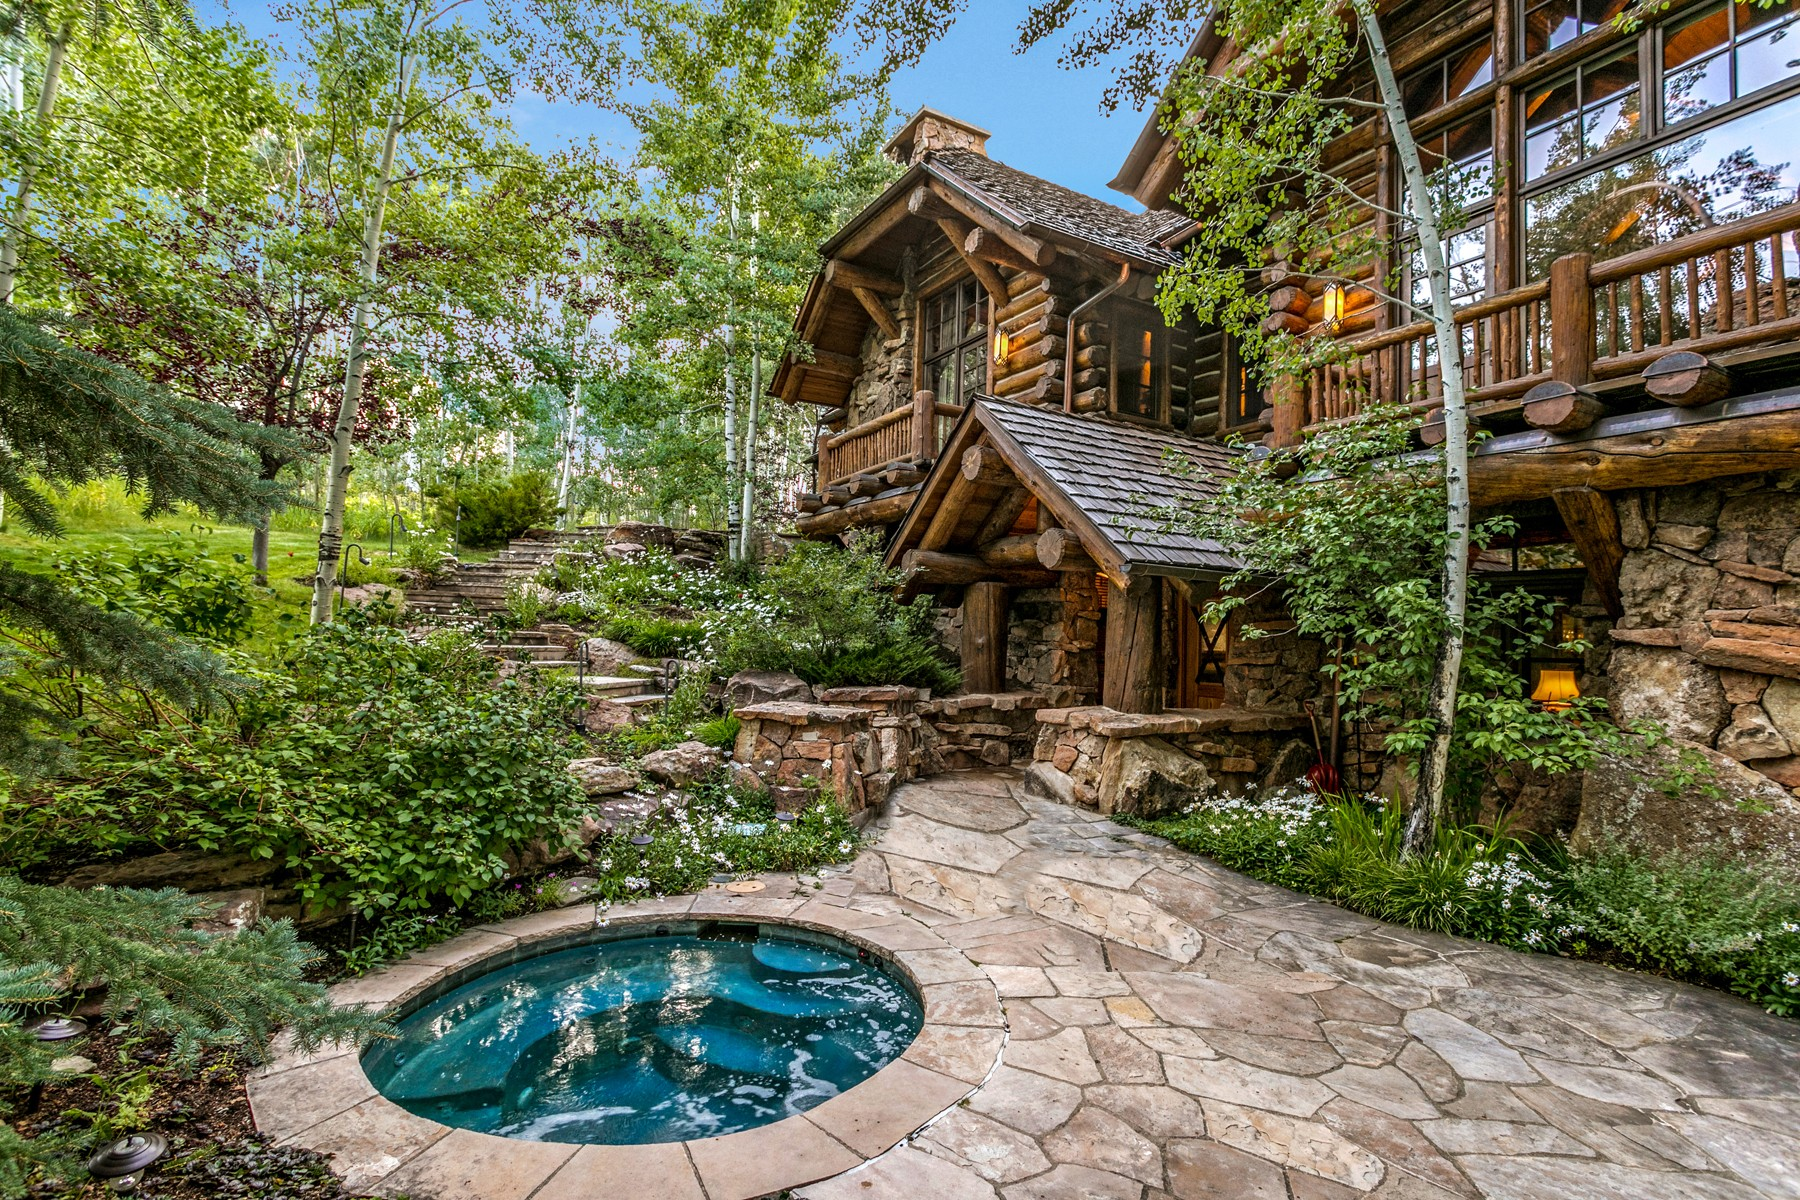 Additional photo for property listing at Private Ski-in/Ski-out 6-bedroom/6.5-bath Custom Log Home 2291 Daybreak Ridge Beaver Creek, Colorado 81620 United States